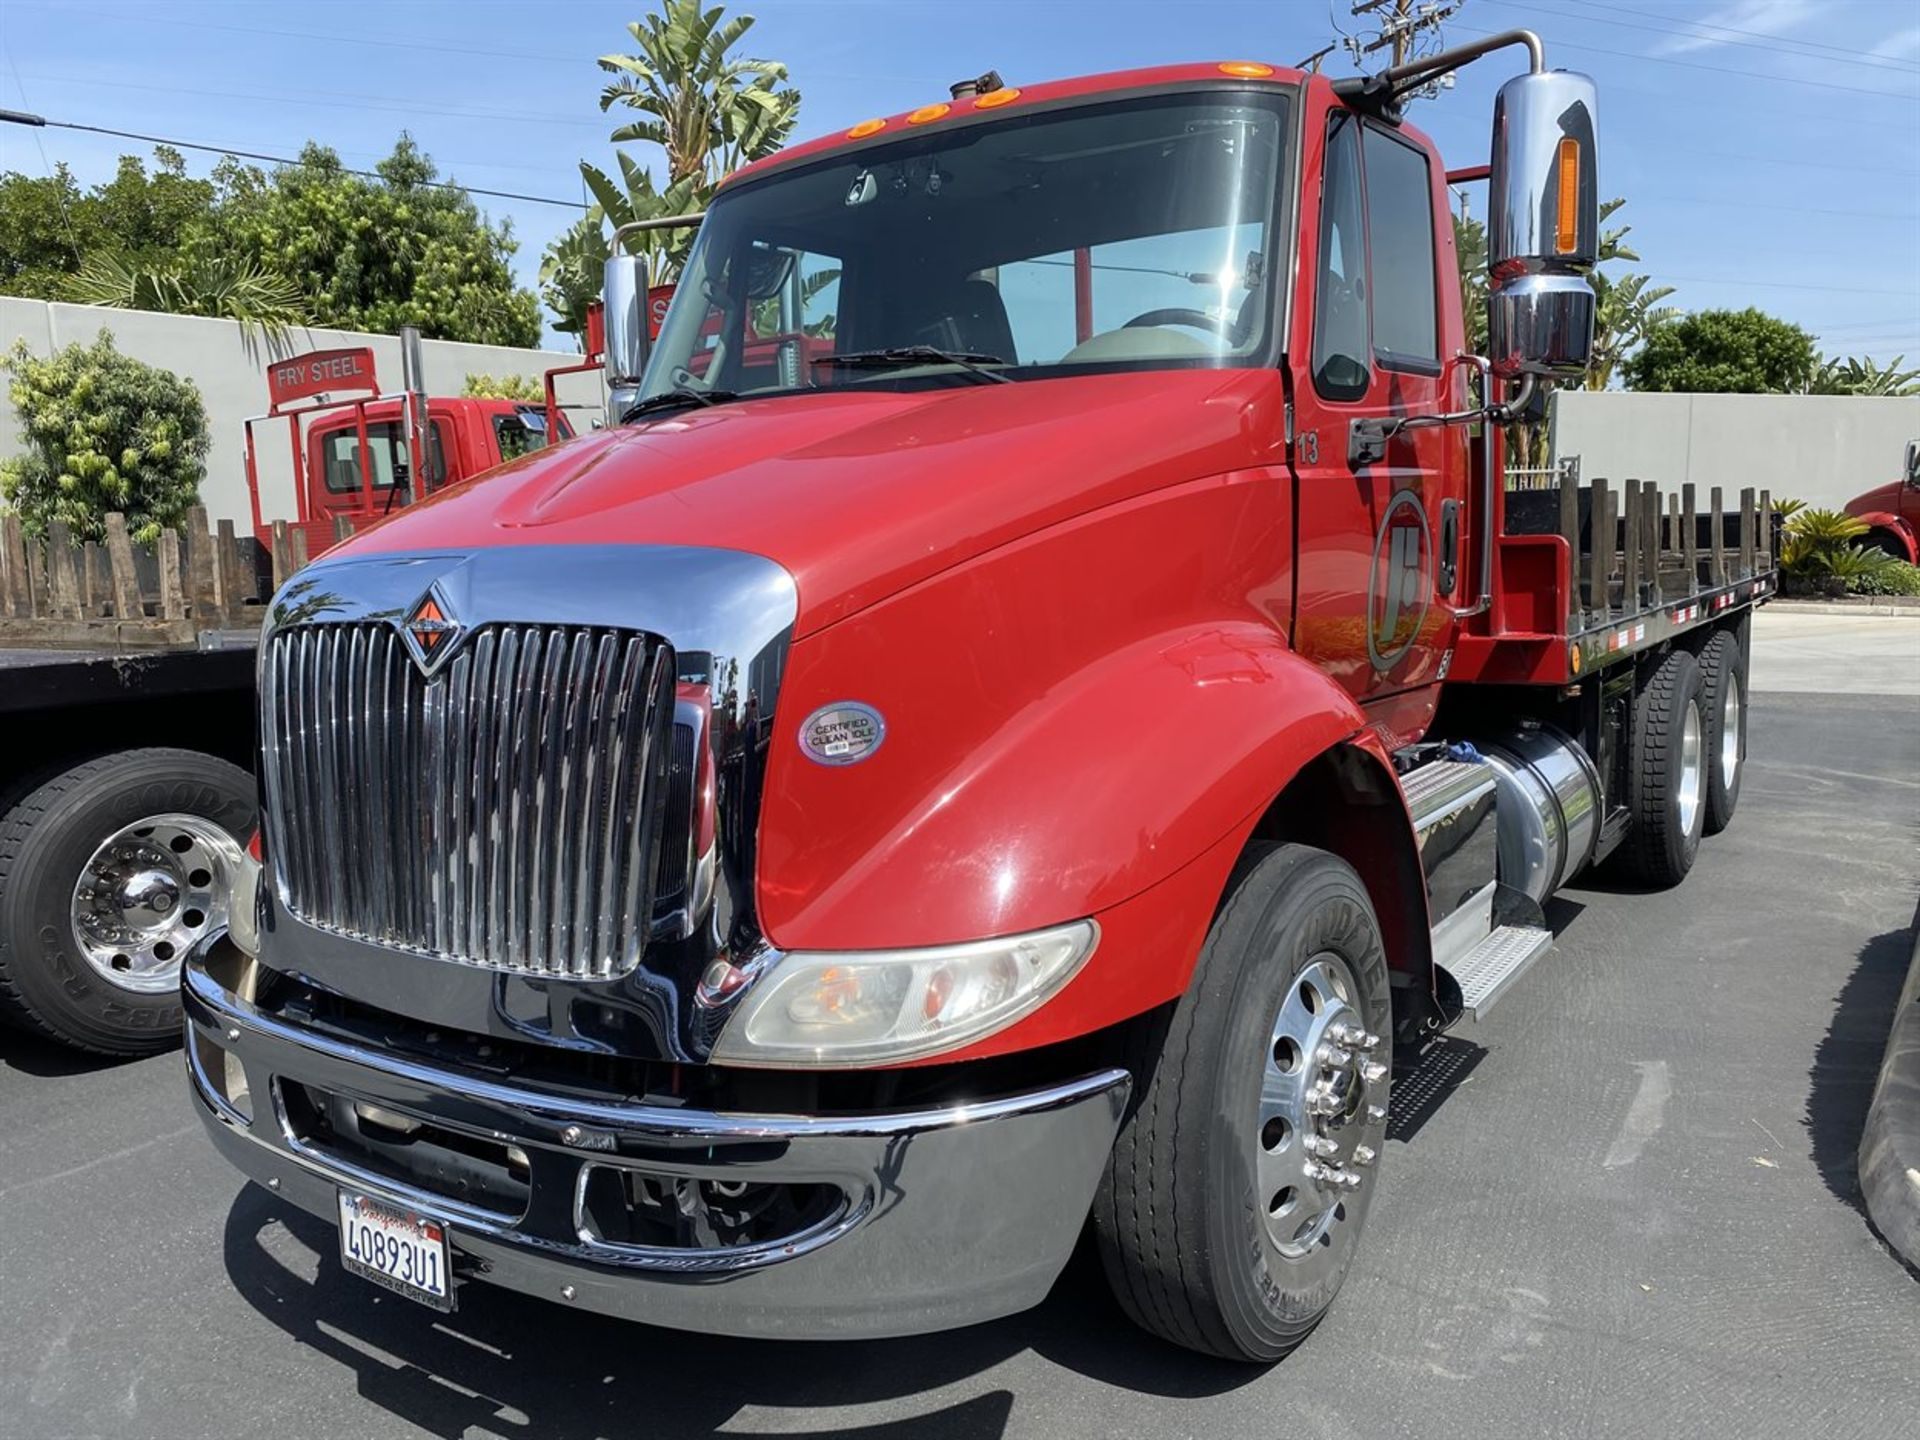 2016 INTERNATIONAL 18' Stake Bed Truck, VIN 3HTHXSNR9GN132471, 131,736 Miles at time of inspection - Image 2 of 17